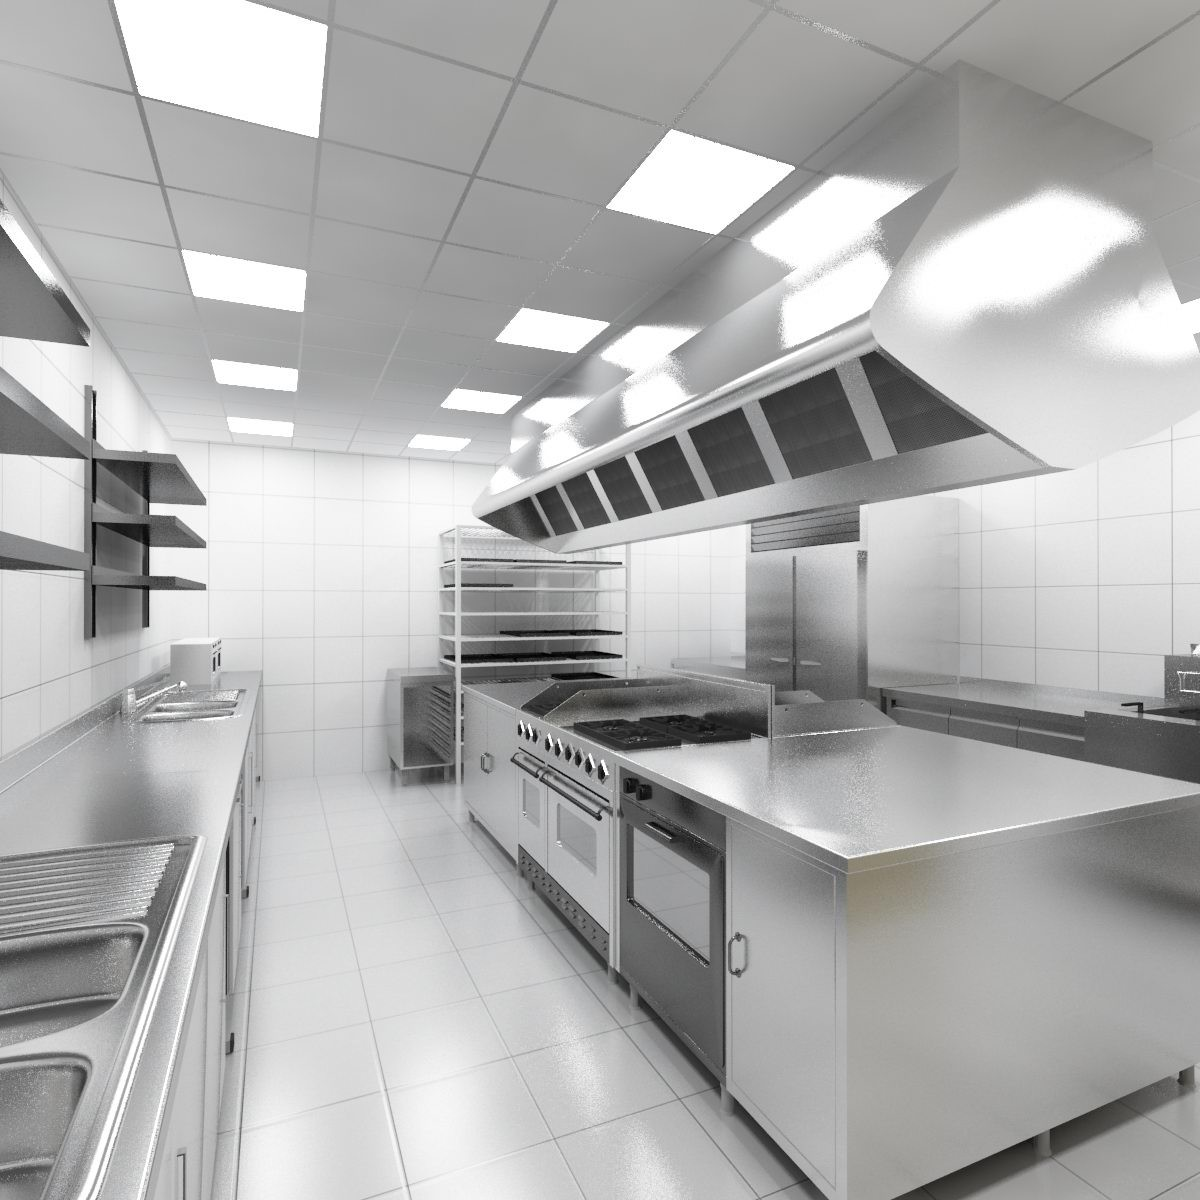 Small Kitchen Models 3d Industrial Kitchen Model